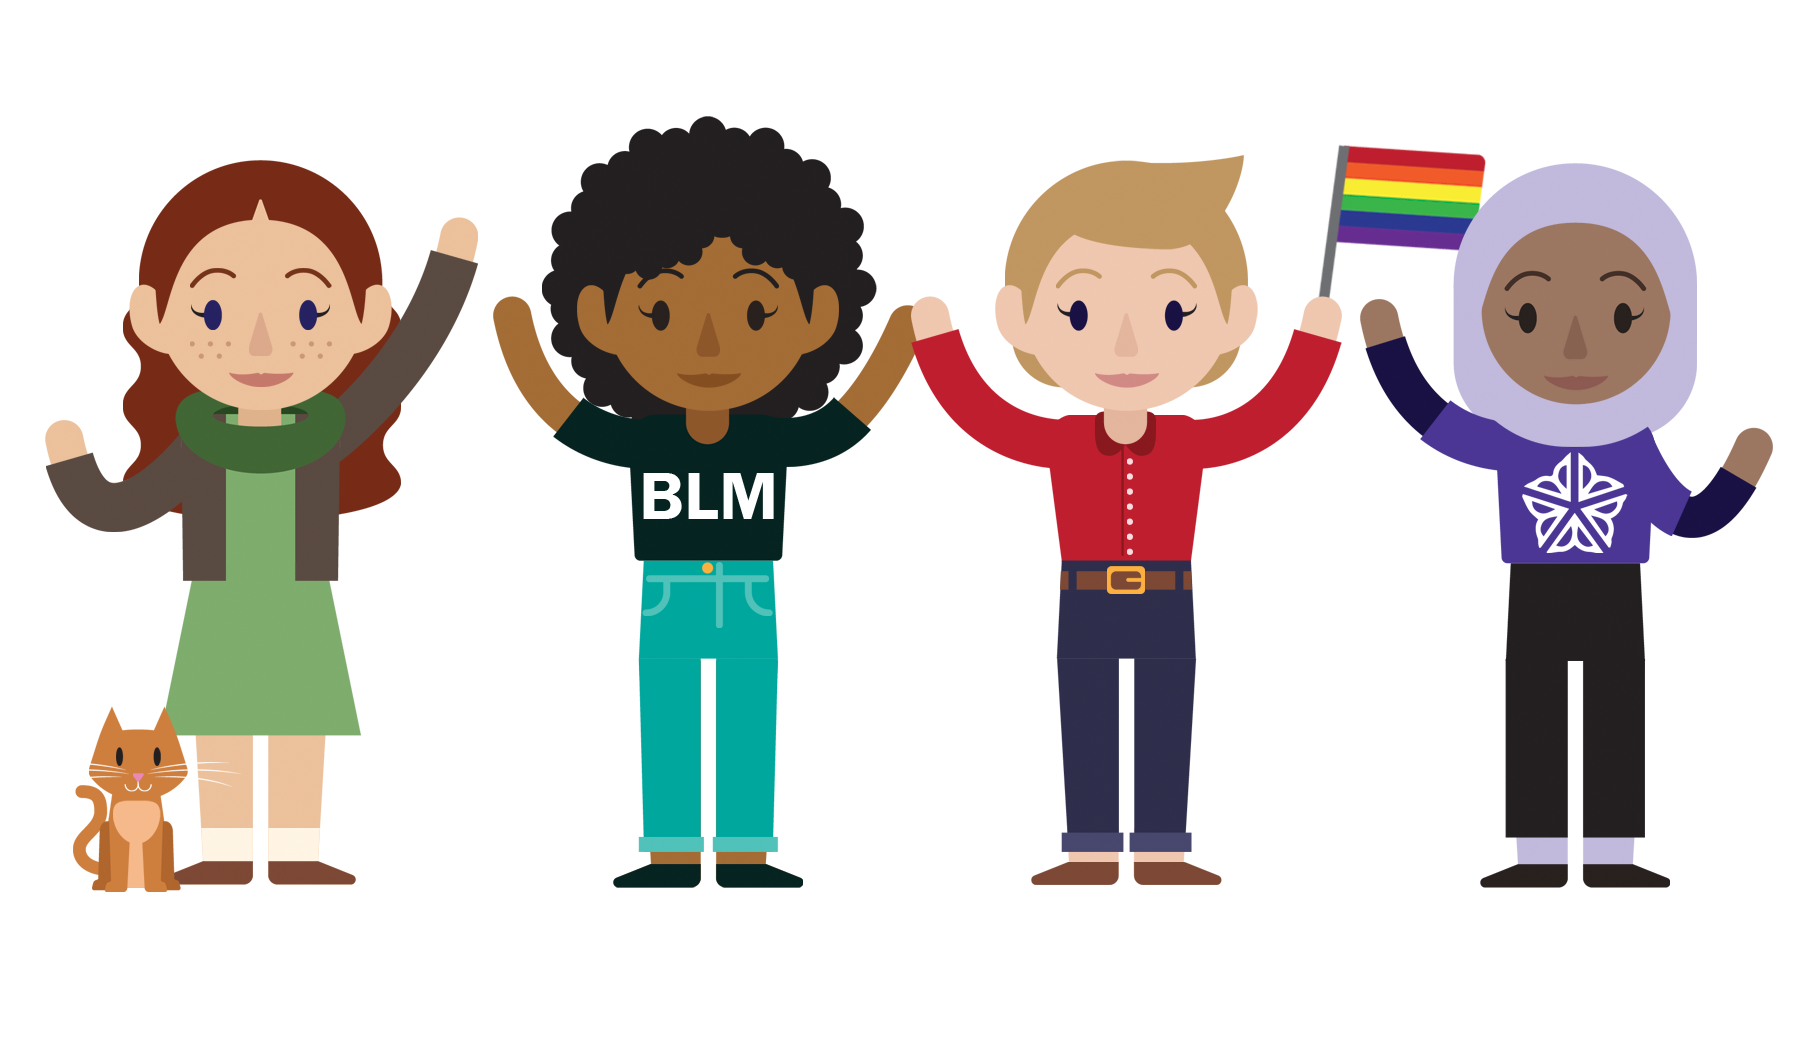 Volunteering clipart ethnic group. Womxn can change the